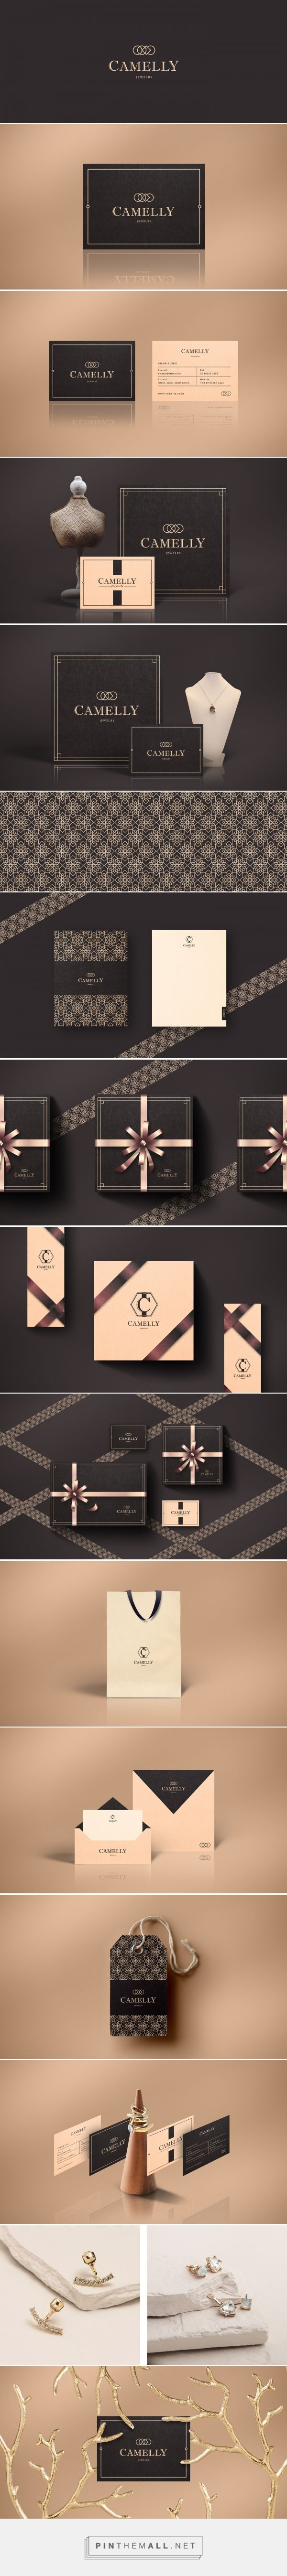 Camelly Jewelry Branding and Packaging by Choi Hwanie | Fivestar Branding Agency – Design and Branding Agency & Curated Inspiration Gallery